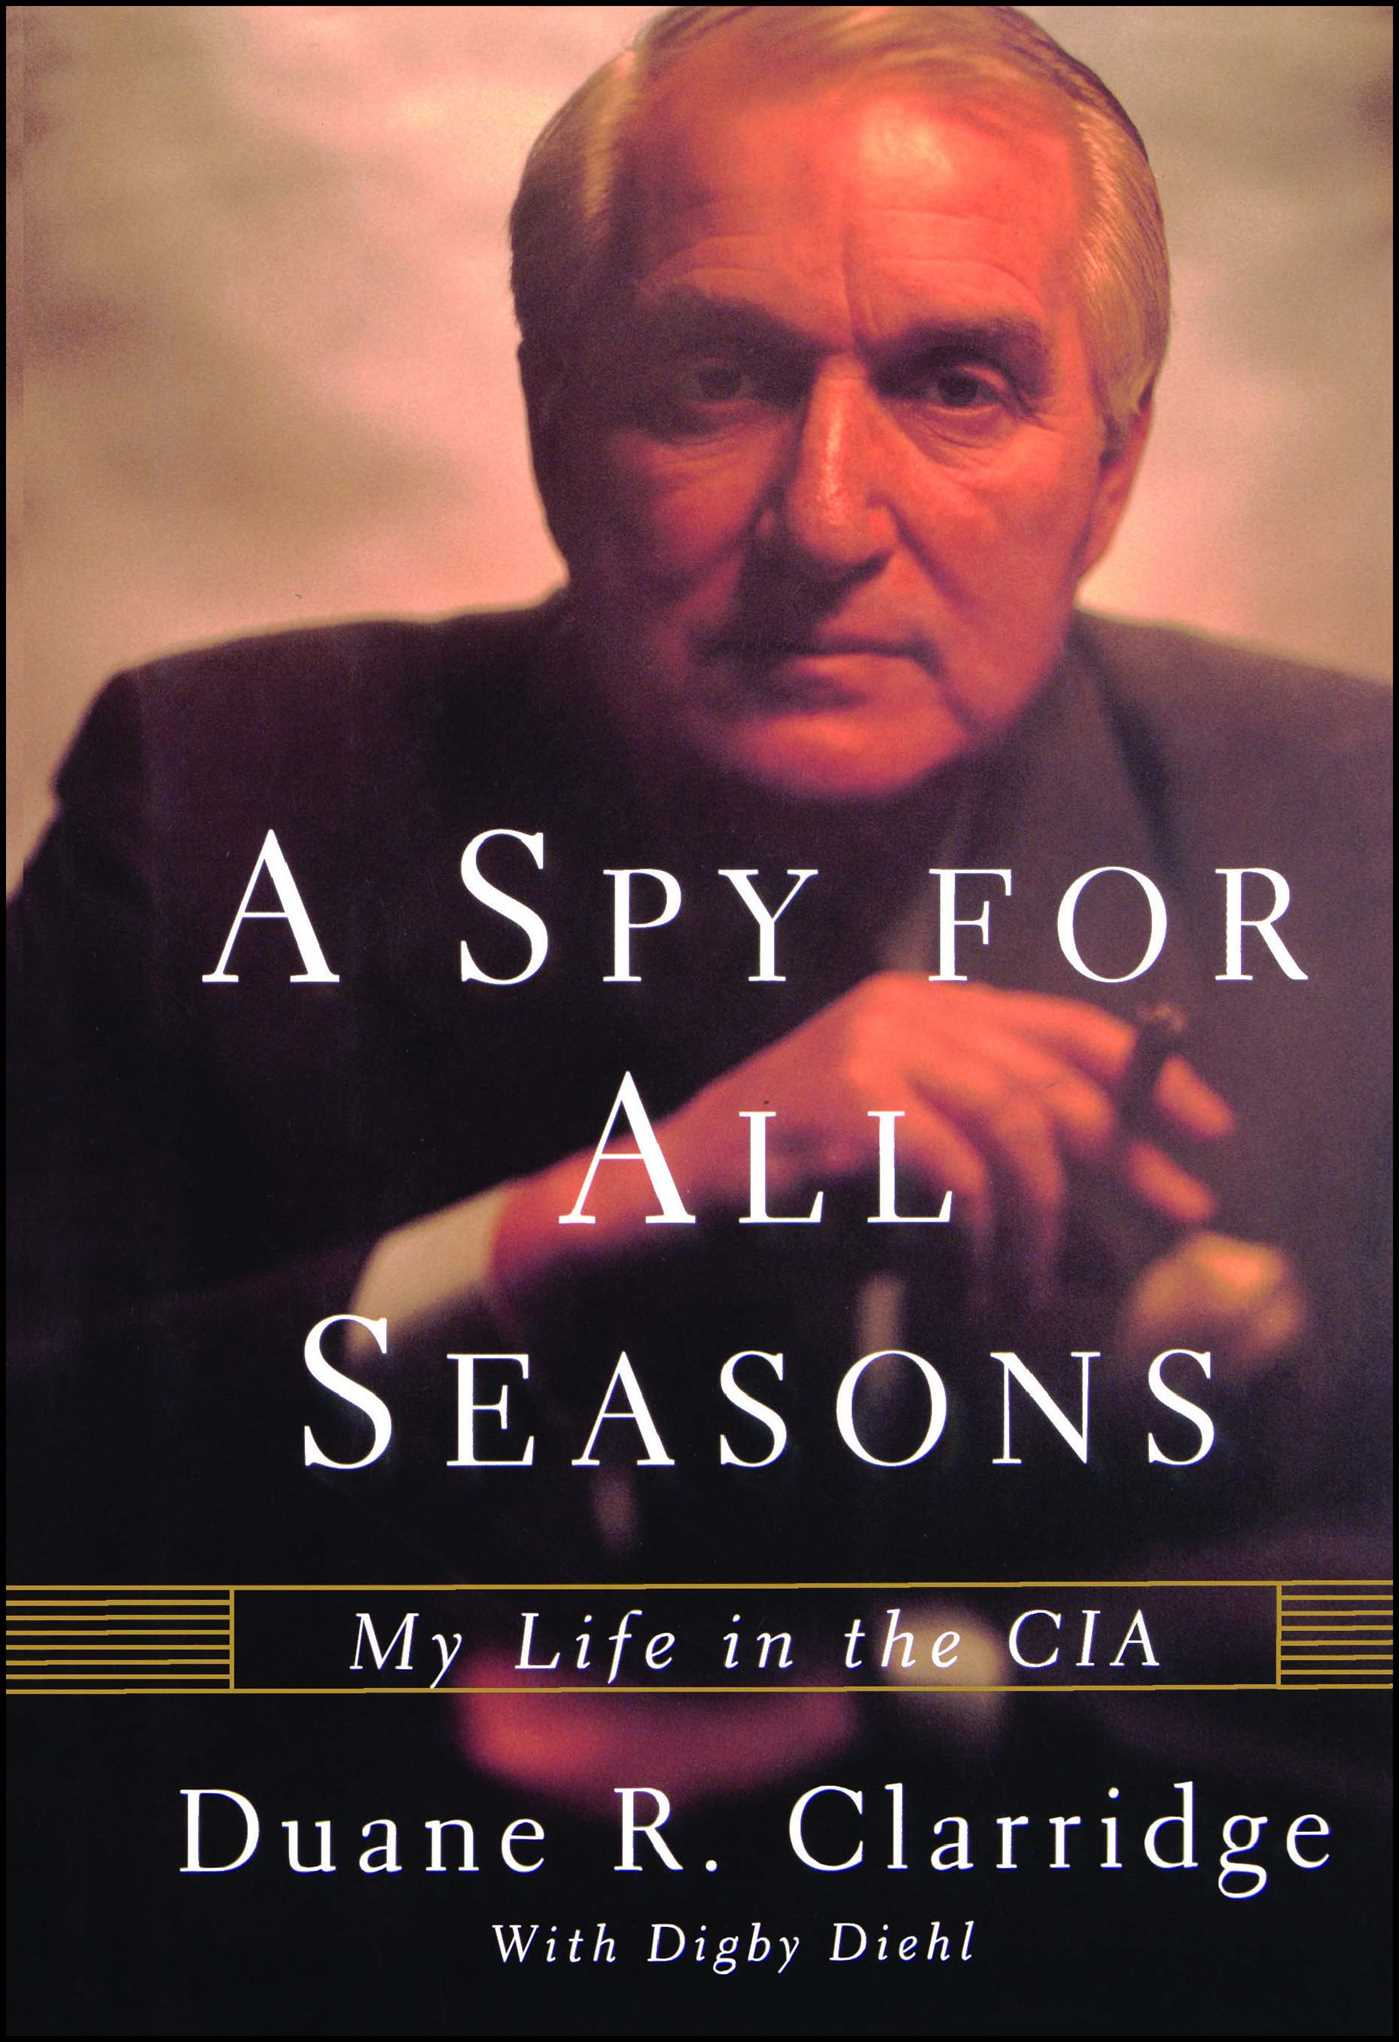 A-spy-for-all-seasons-9780743245364_hr